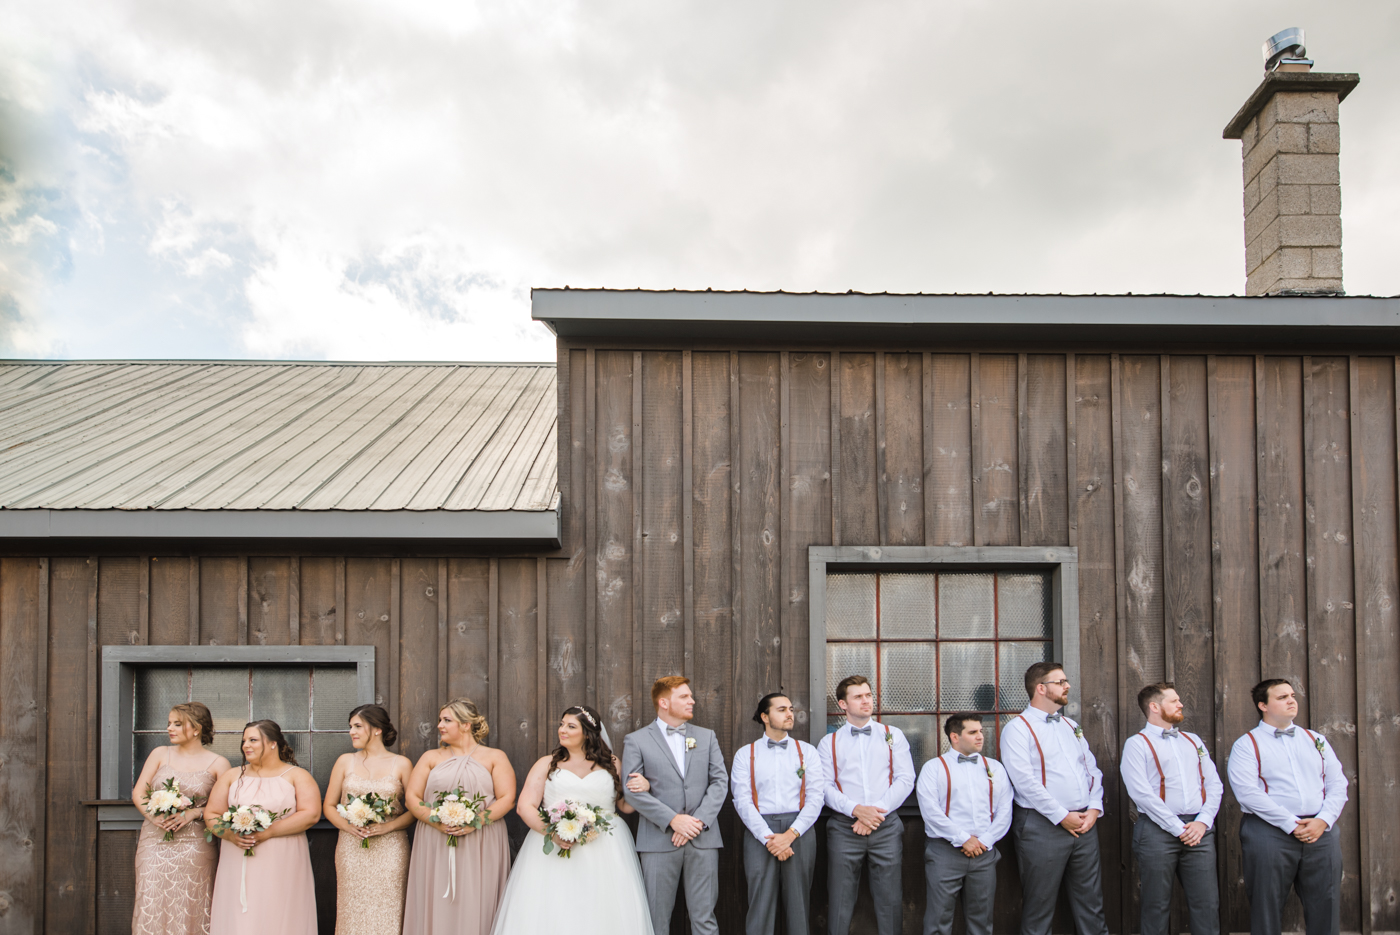 James & Laura's Barn Wedding The Farm Pearle Weddings Company Earth to Table Flamborough Hamilton Ontario Waterdown Outdoor Summer Aidan Hennebry of Hush Hush Photography & Film-13.jpg